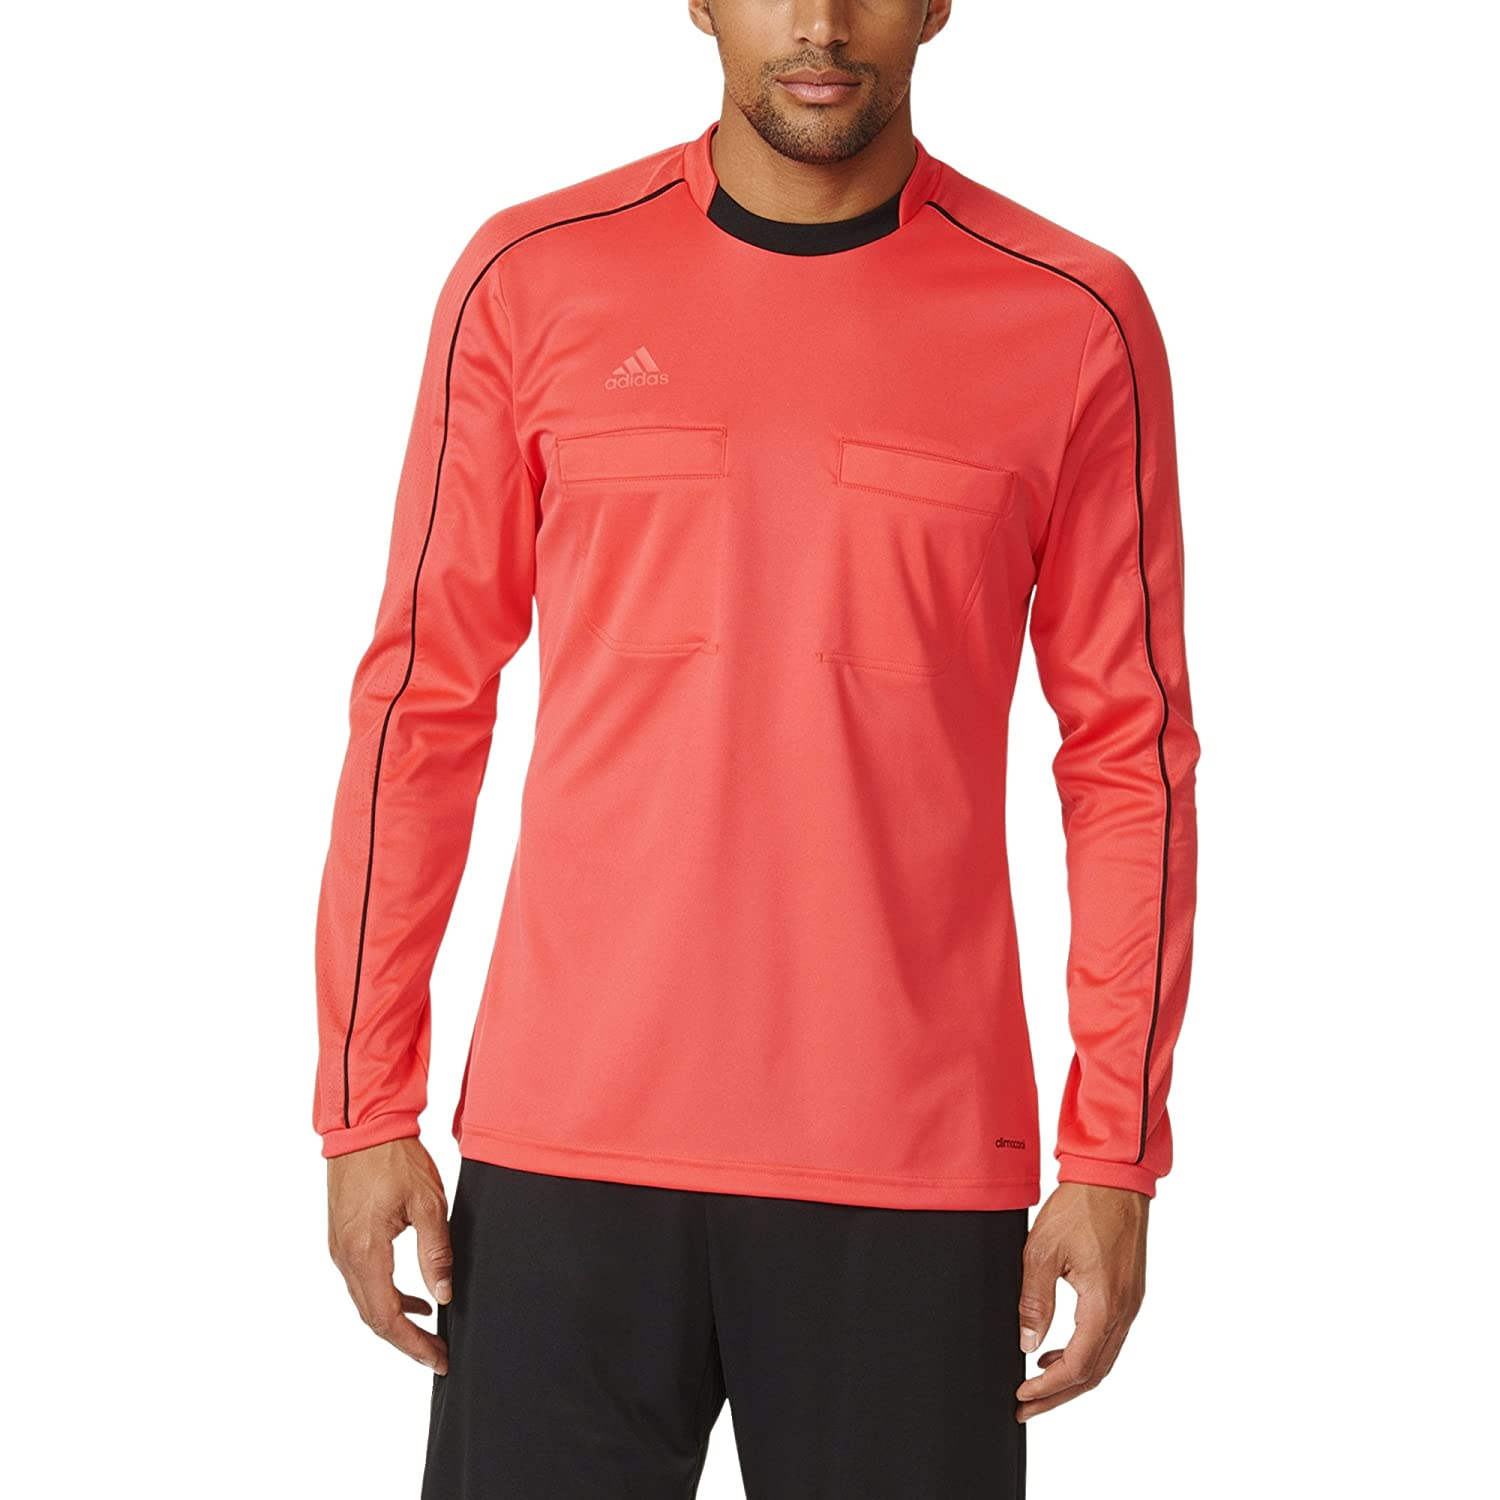 adidas Men's Ref16 ong Seeve Jersey, Shock Yeow/Back,/G